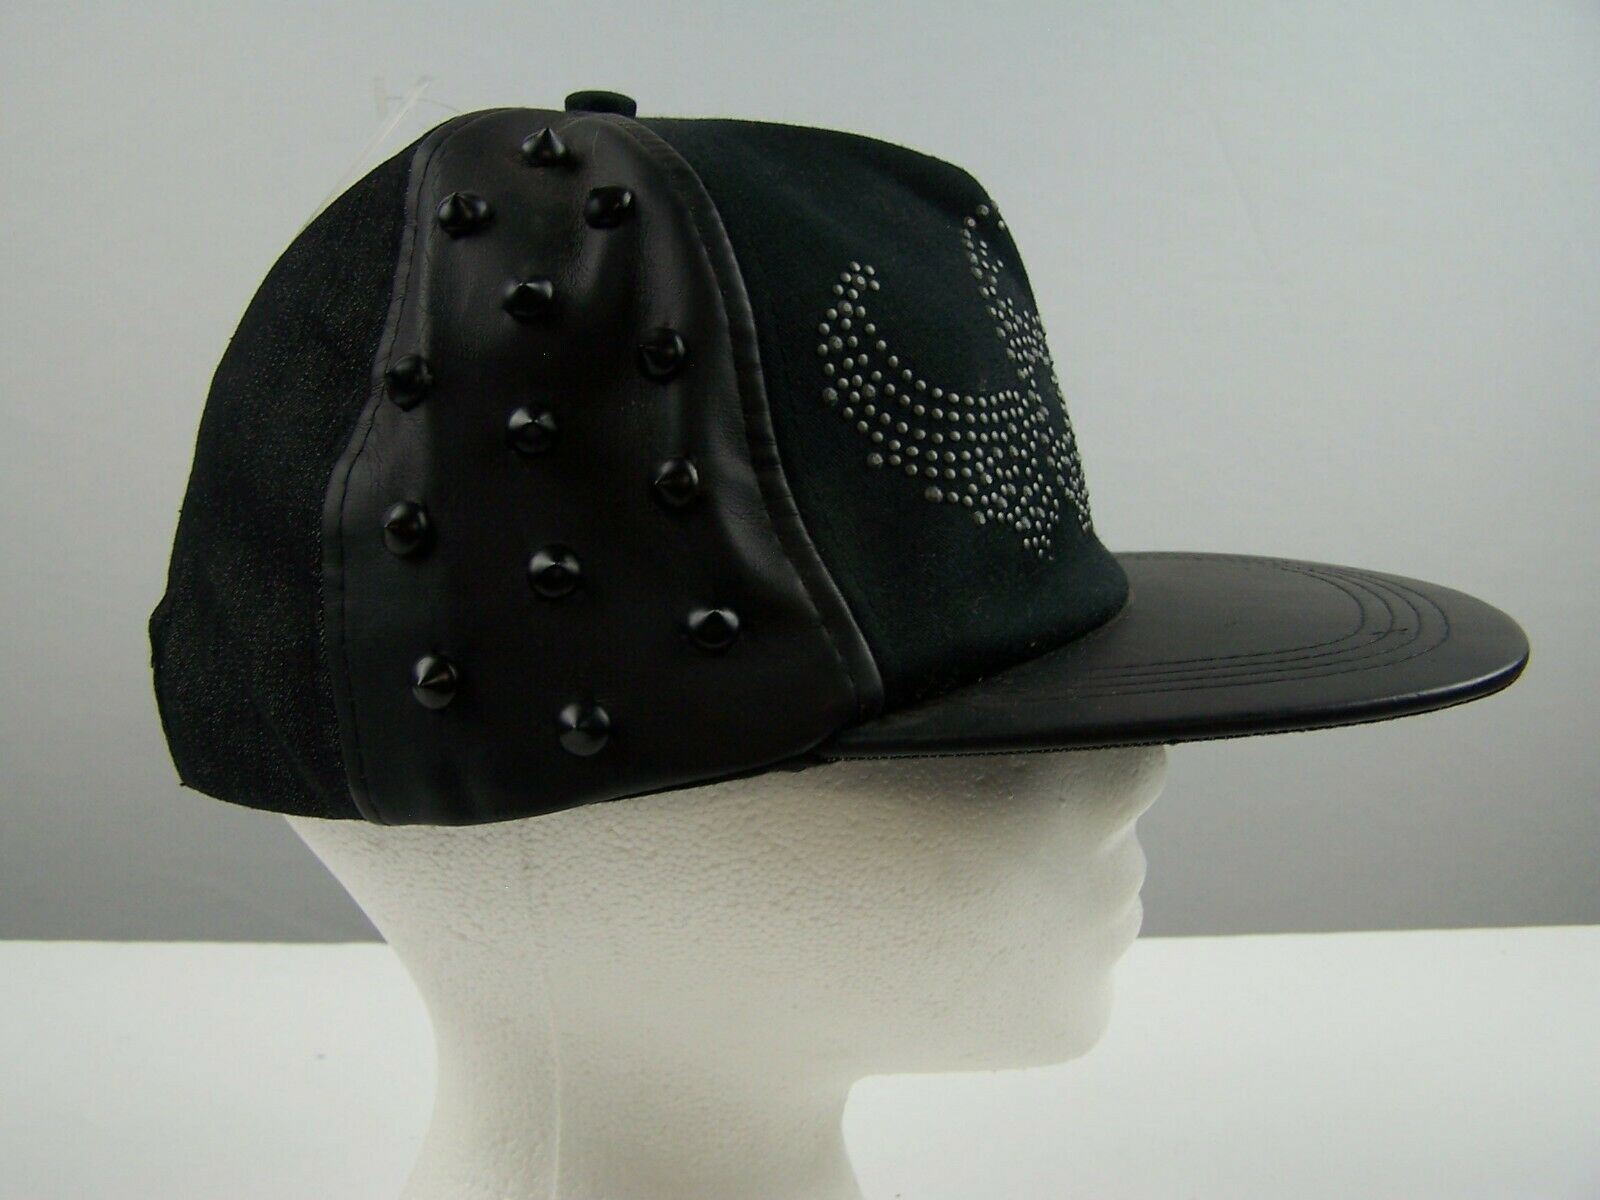 Black Stud Skull with Wings Baseball Cap Hat Claire's N